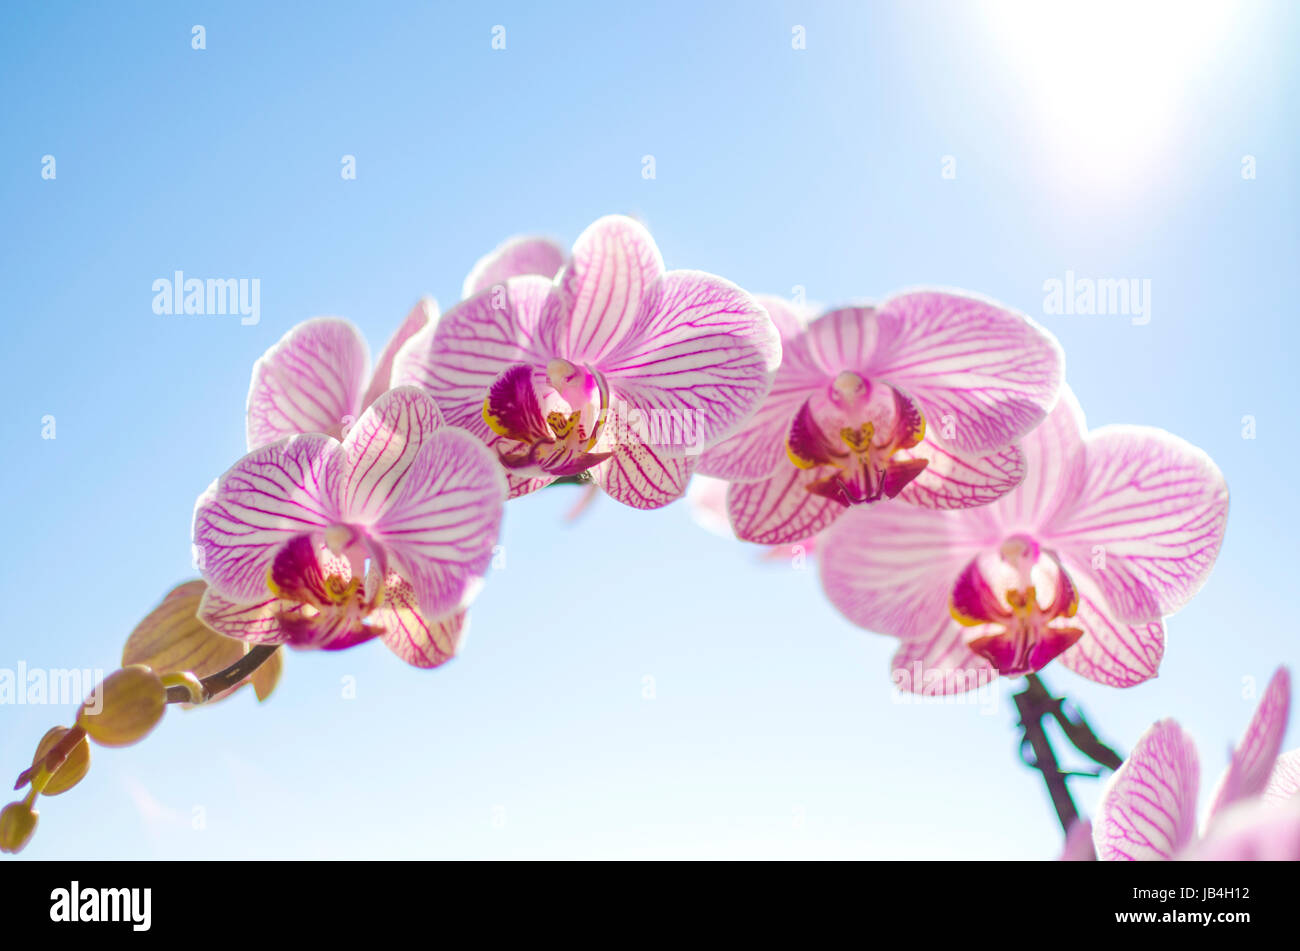 A close up of a branch with blossomed pink striped petals of the beautiful flower orchid, Phalaenopsis. The orchidea - Stock Image